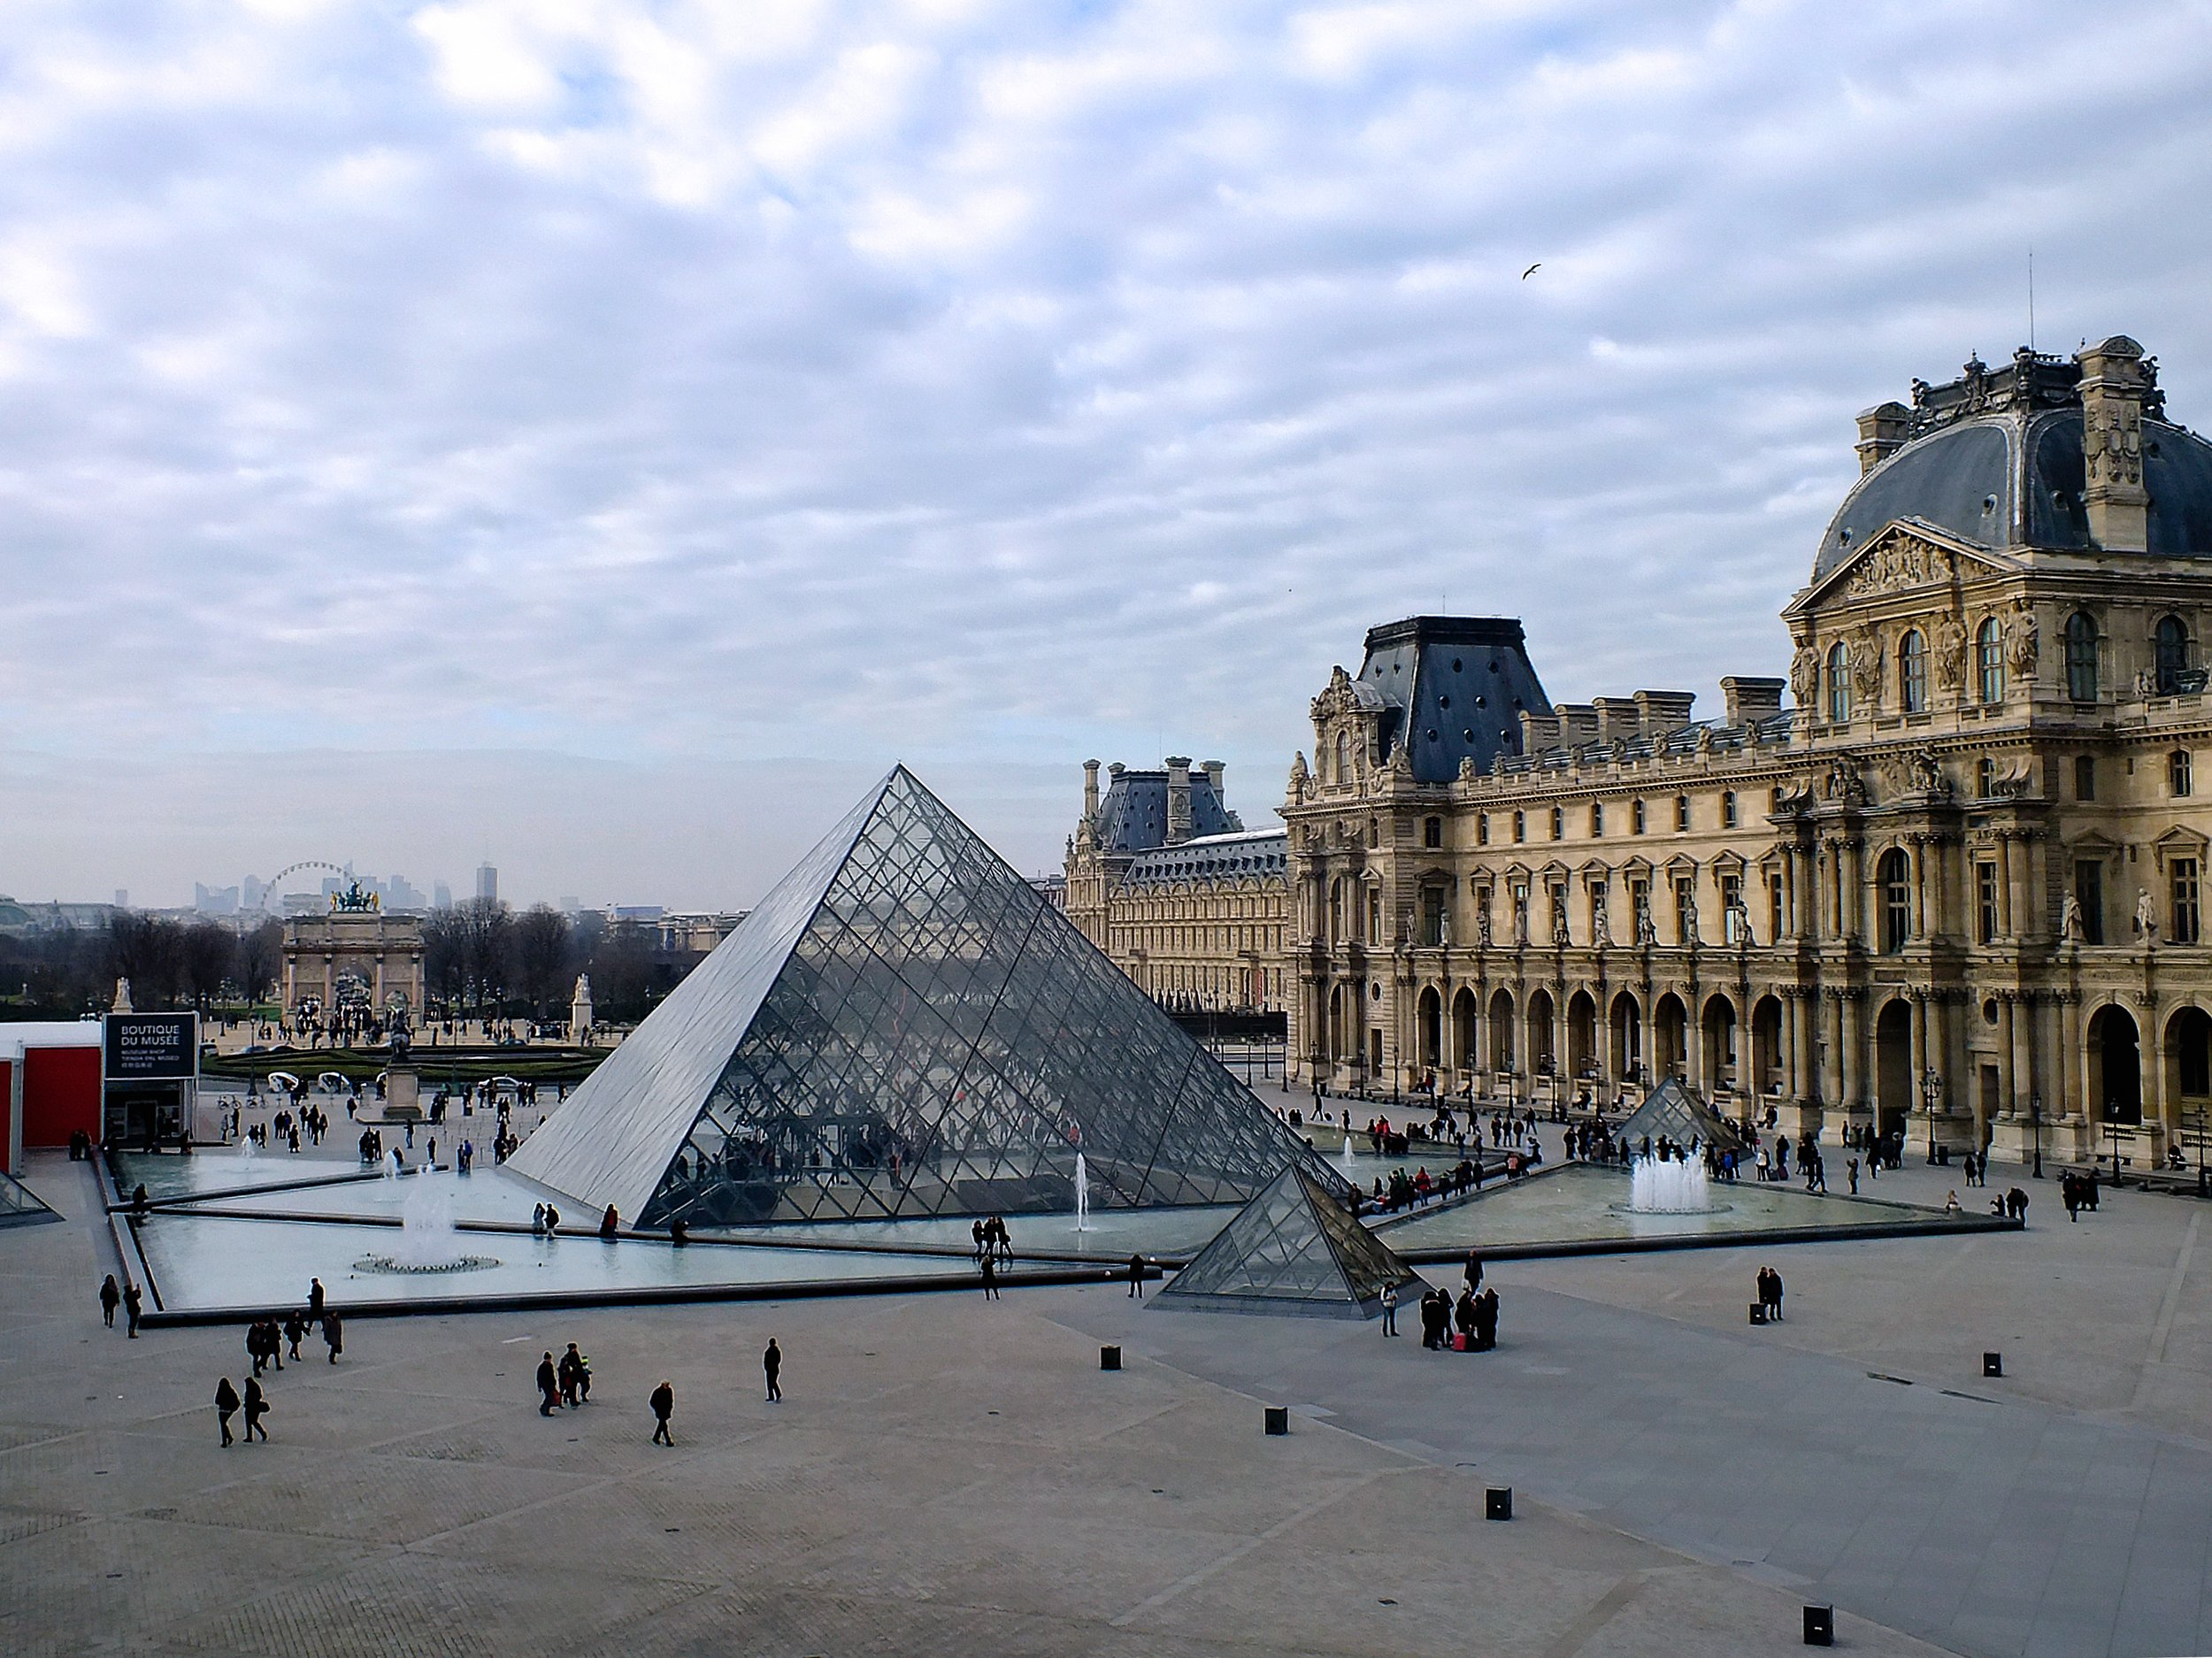 The Hotel Regina in Paris is within walking distance of The Louvre and many other attractions